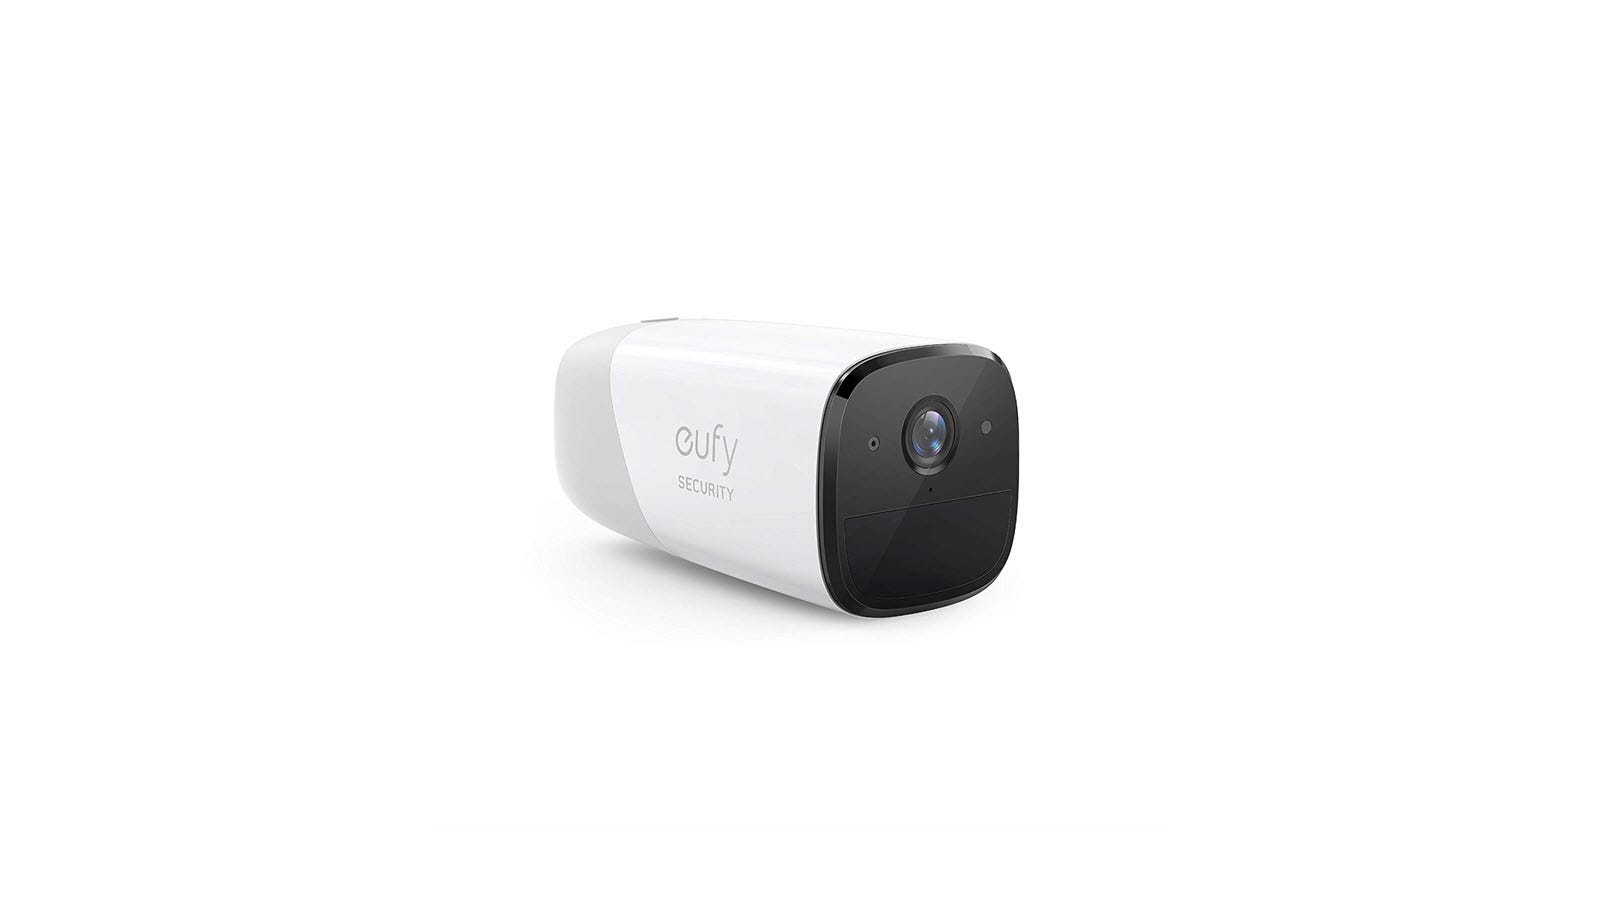 A singly Eufy Cam against a white background.